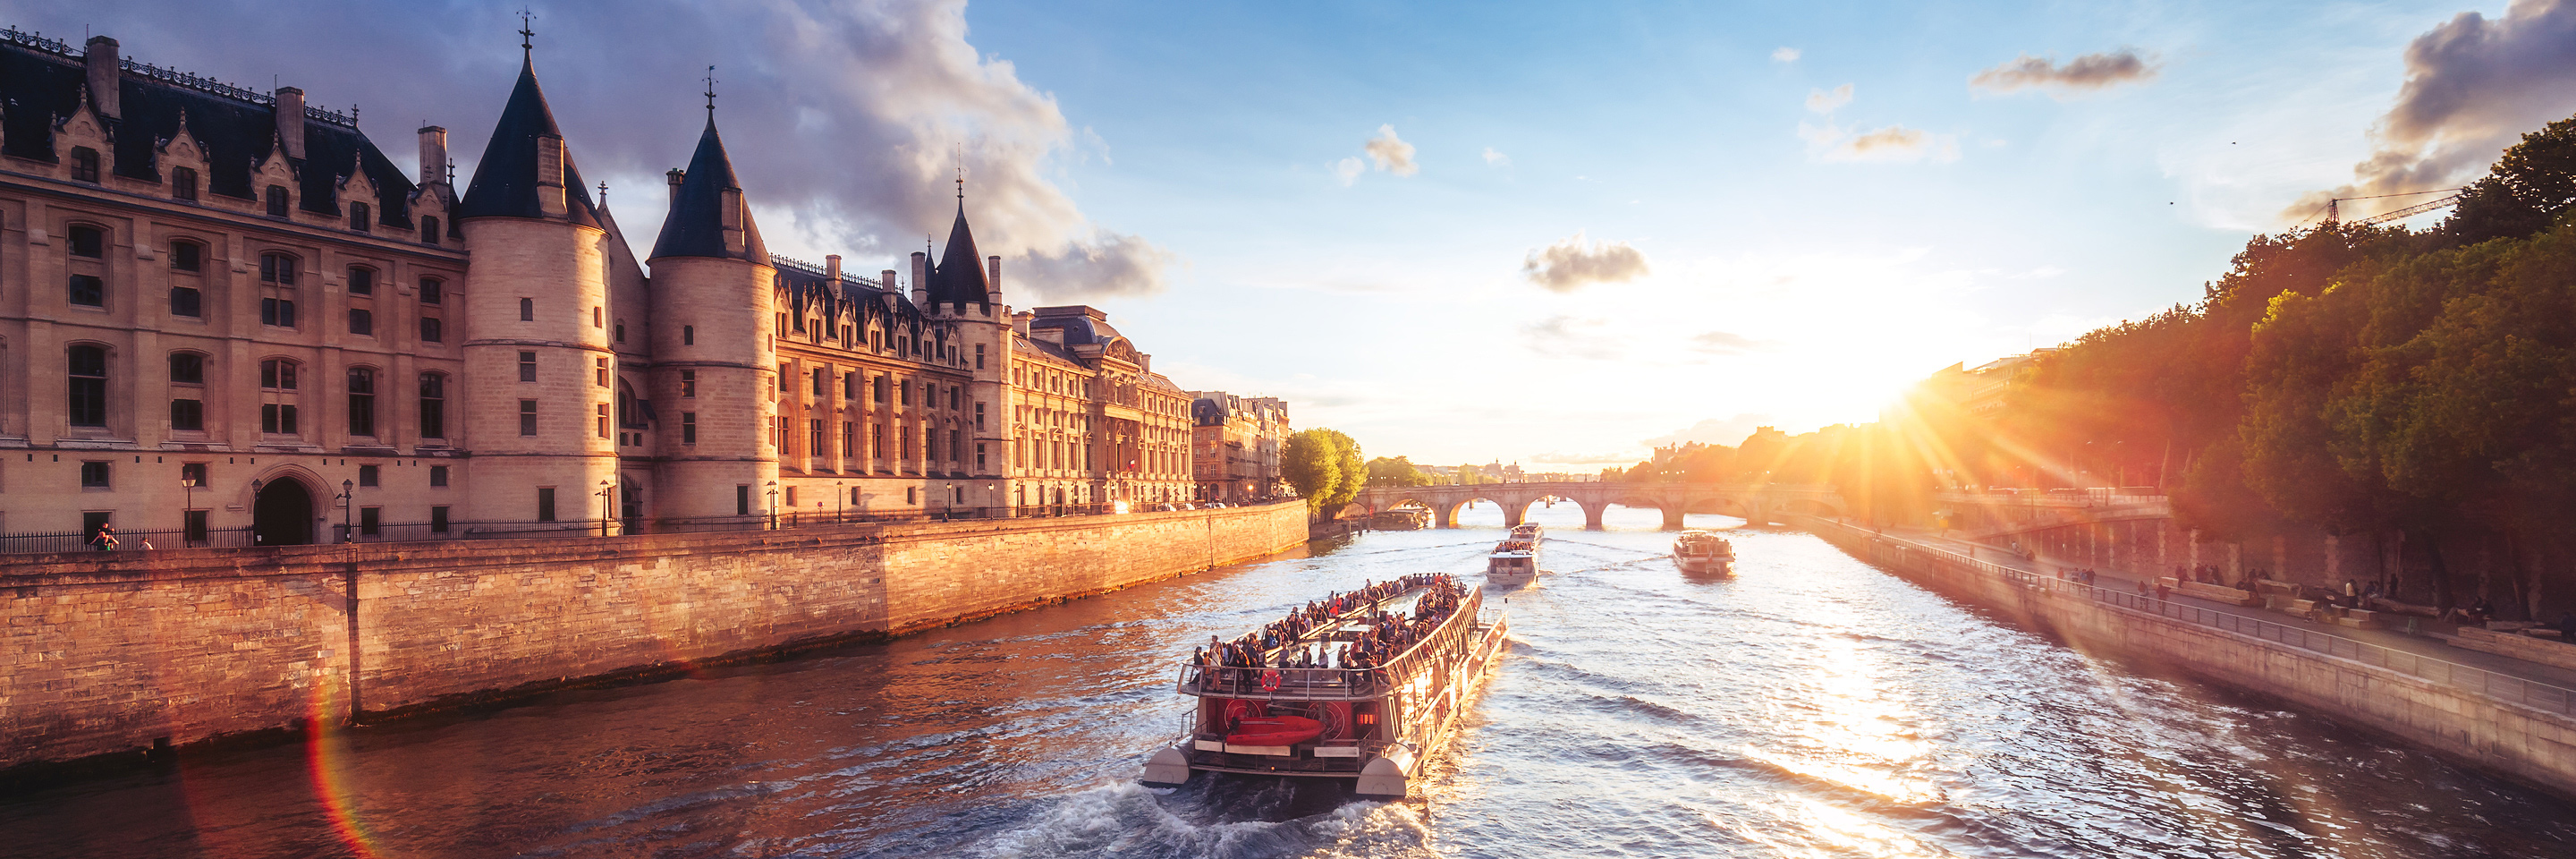 The Rhine & Moselle: Canals, Vineyards & Castles with 2 nights in Paris for Photography Enthusiasts